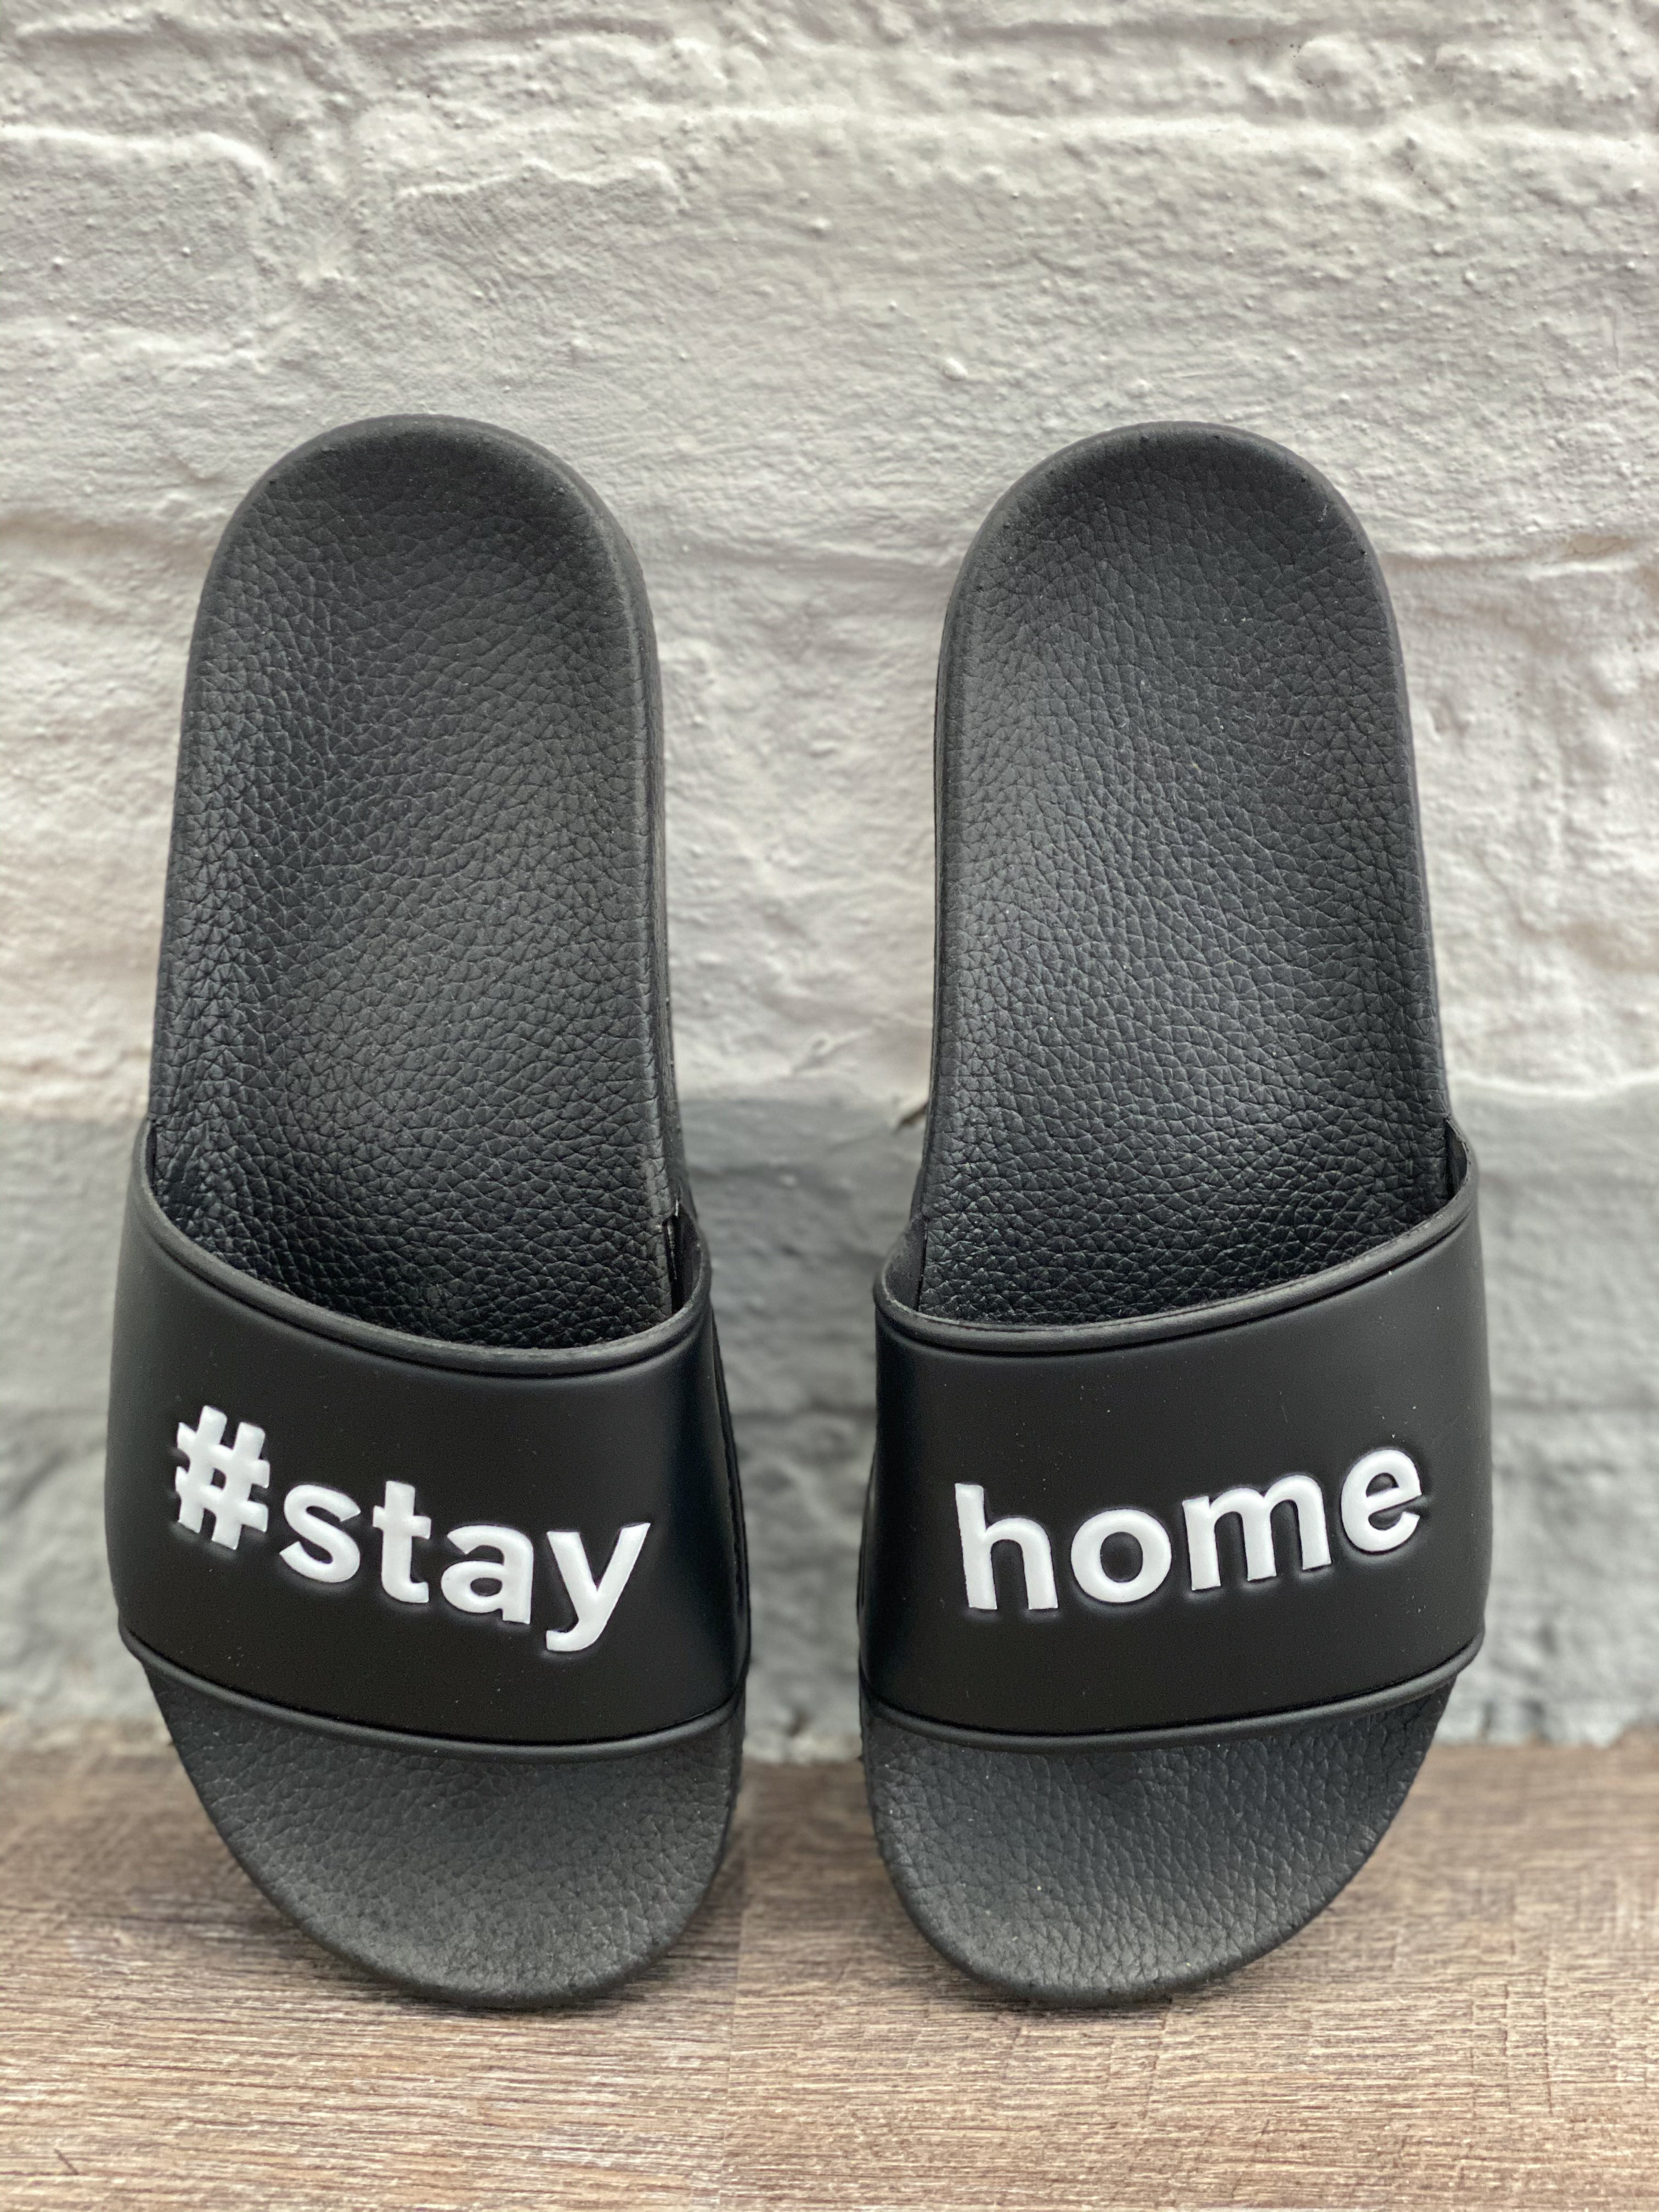 The #stayhome Slides